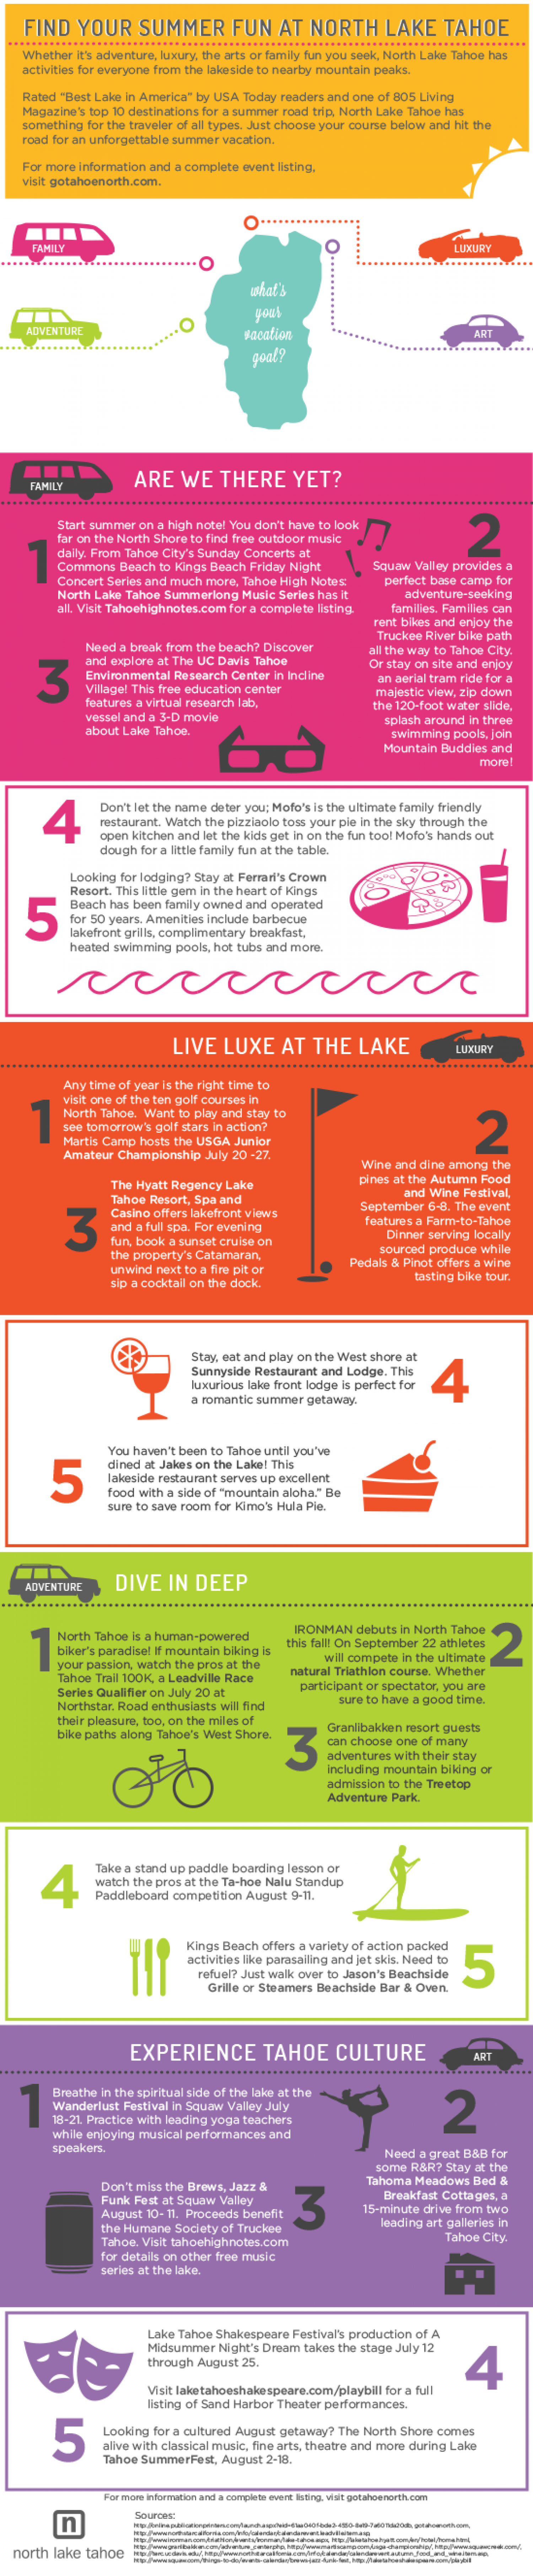 Take a Road Trip to North Lake Tahoe This Summer Infographic